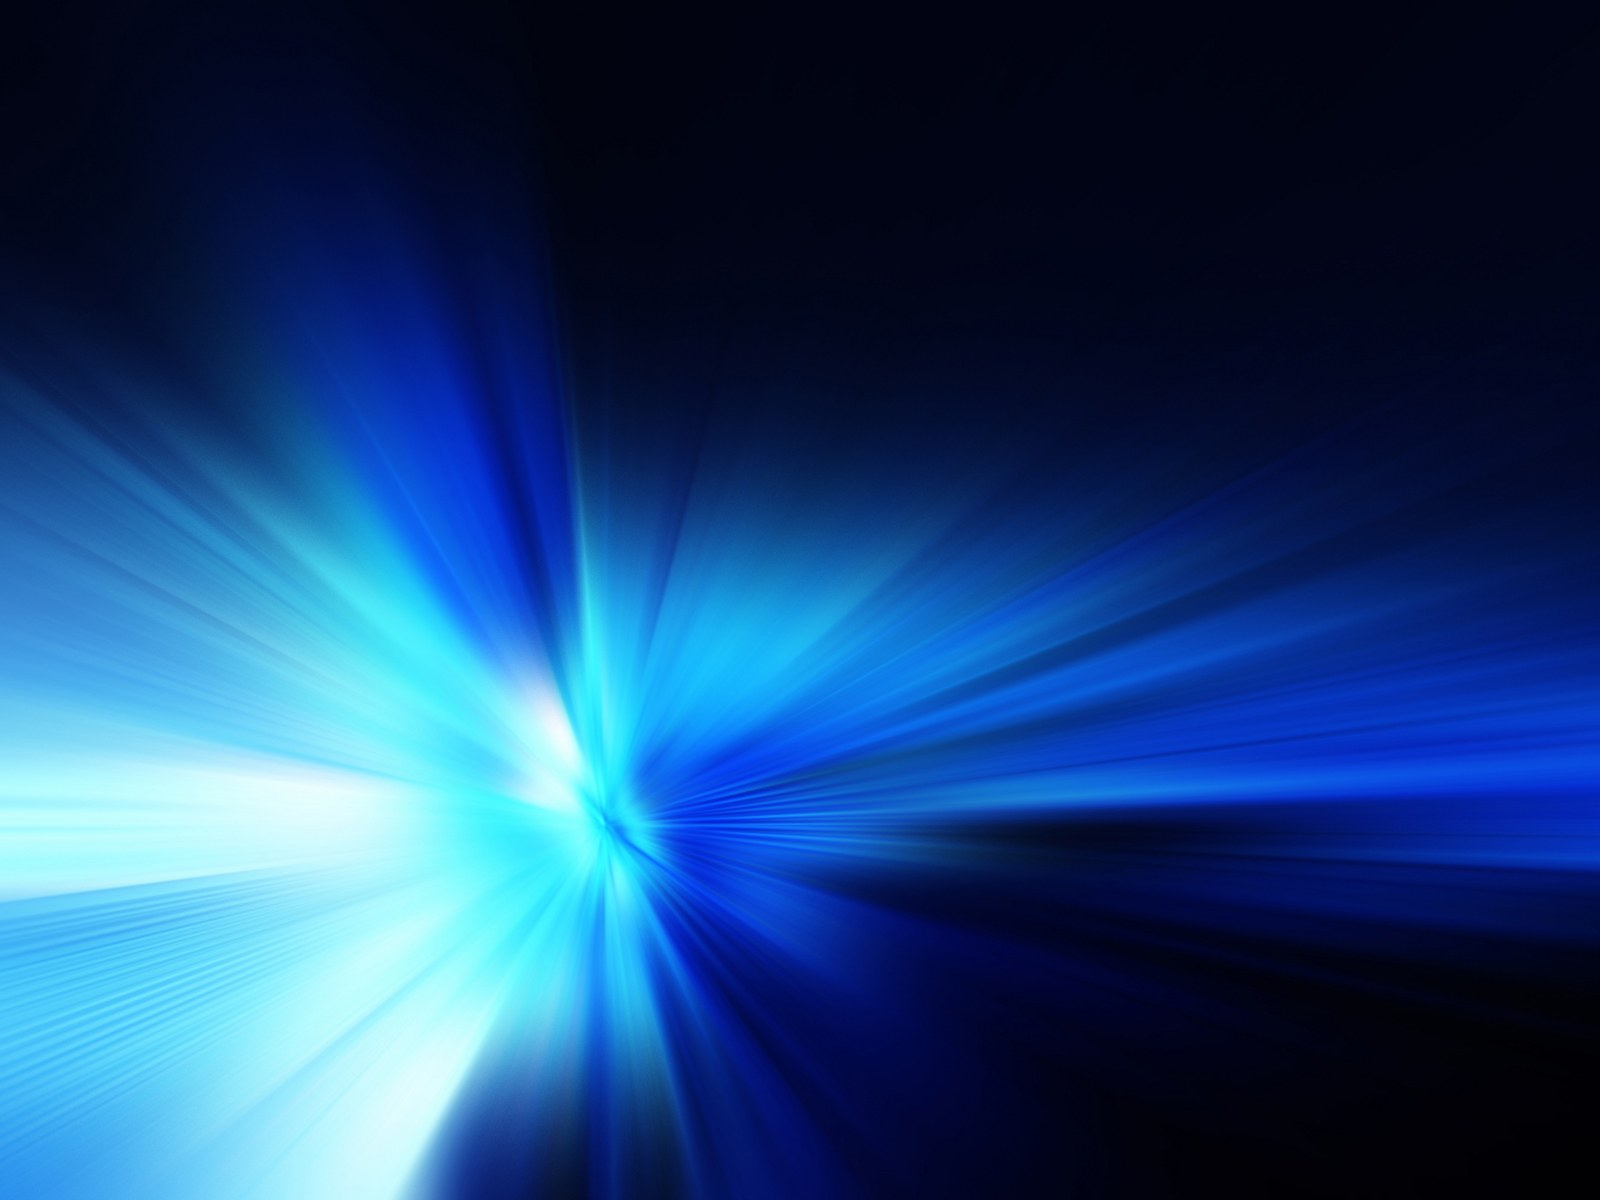 blue abstract light effect - photo #2